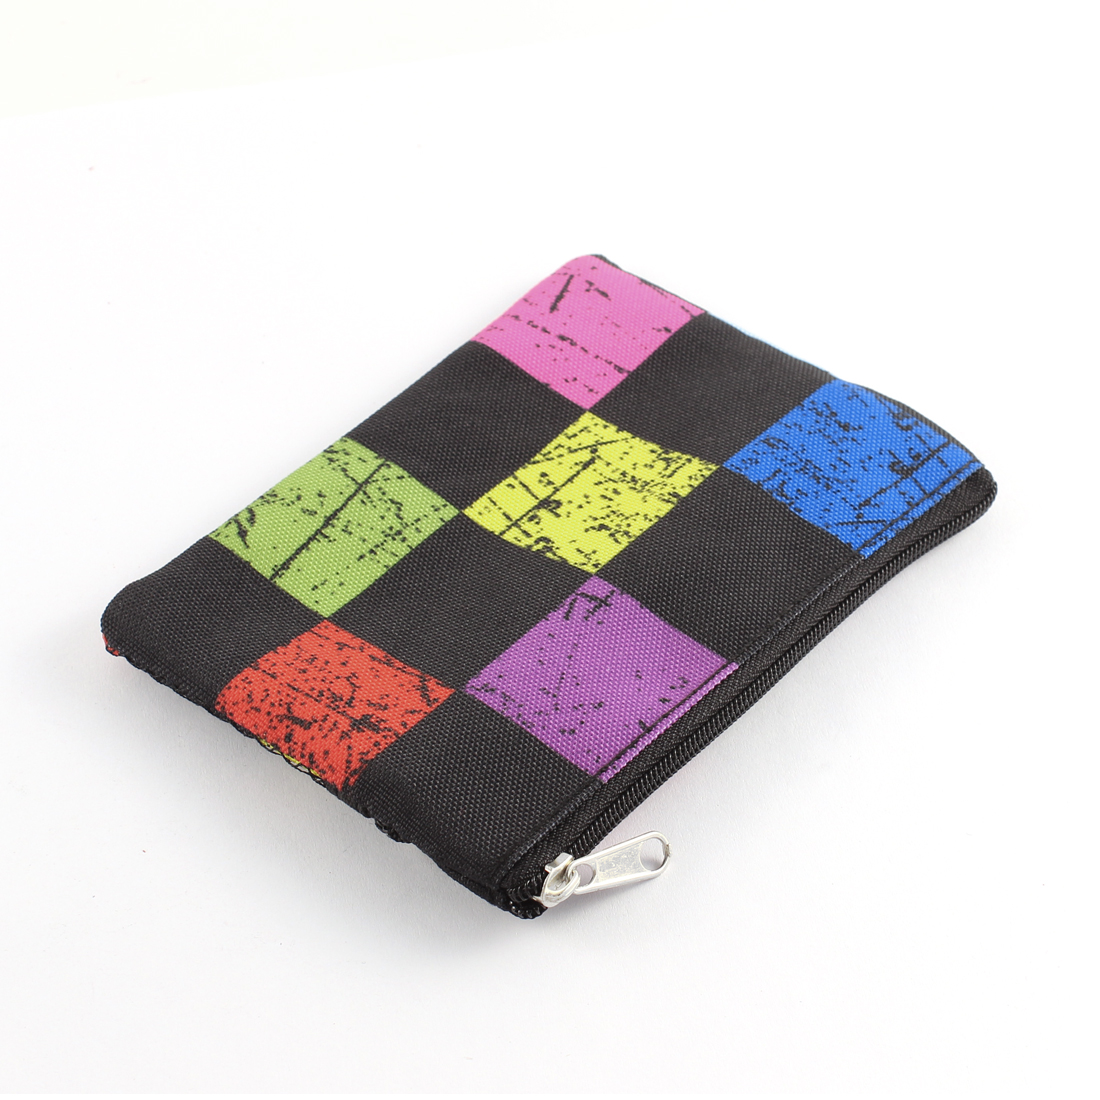 Dual Zippered Grid Pattern Nylon Mesh Coin Purse Toiletry Cosmetic Bag Multicolor